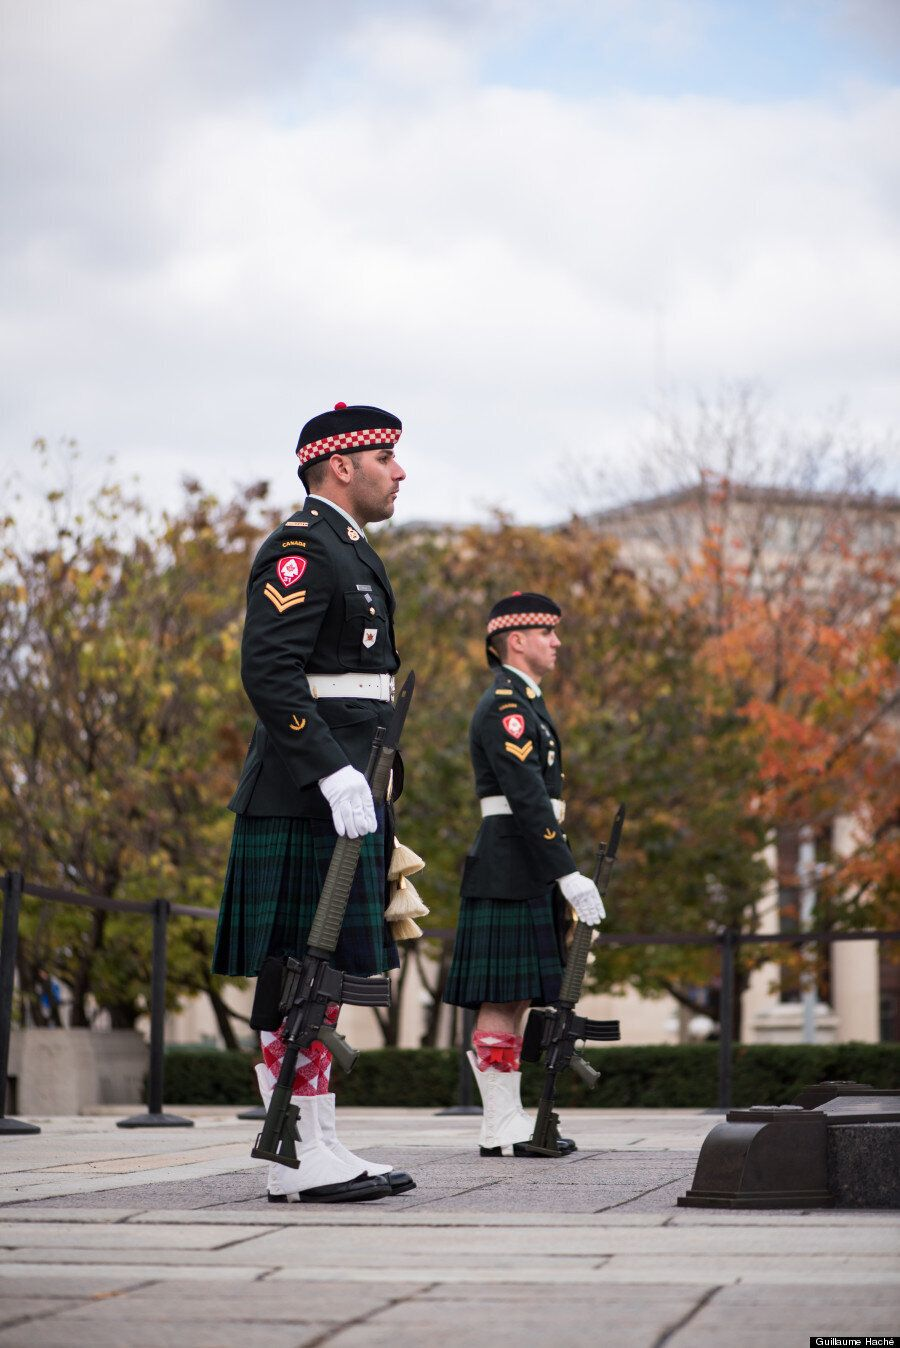 This Is How We Should Remember Nathan Cirillo